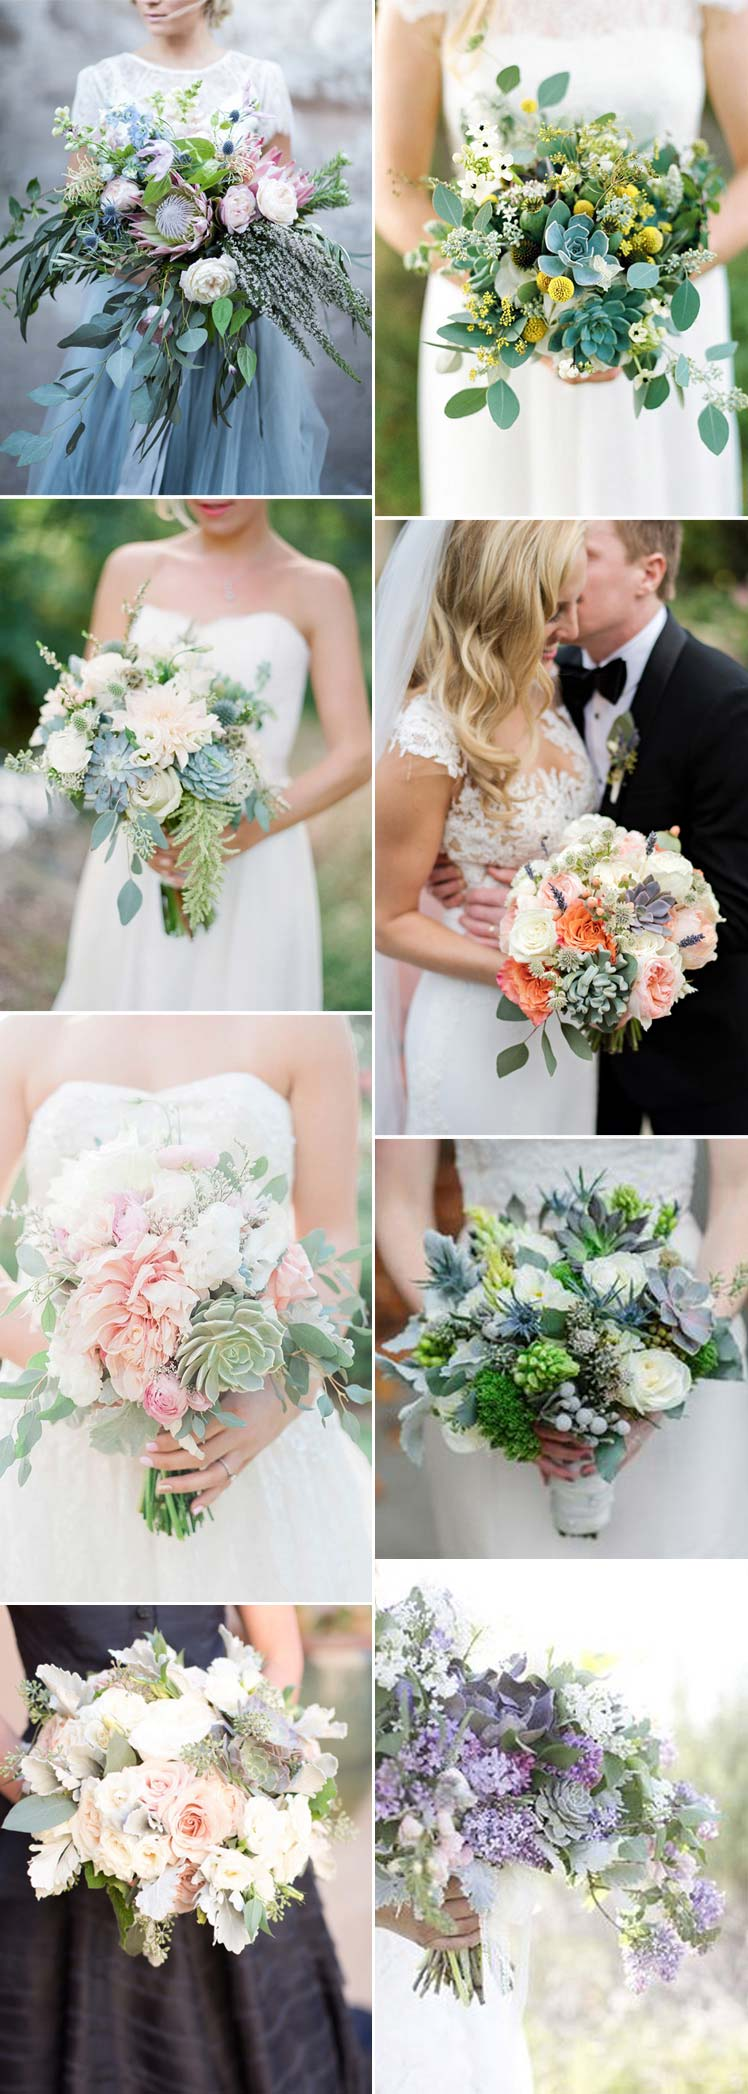 Succulent bridal bouquet inspiration for your special day